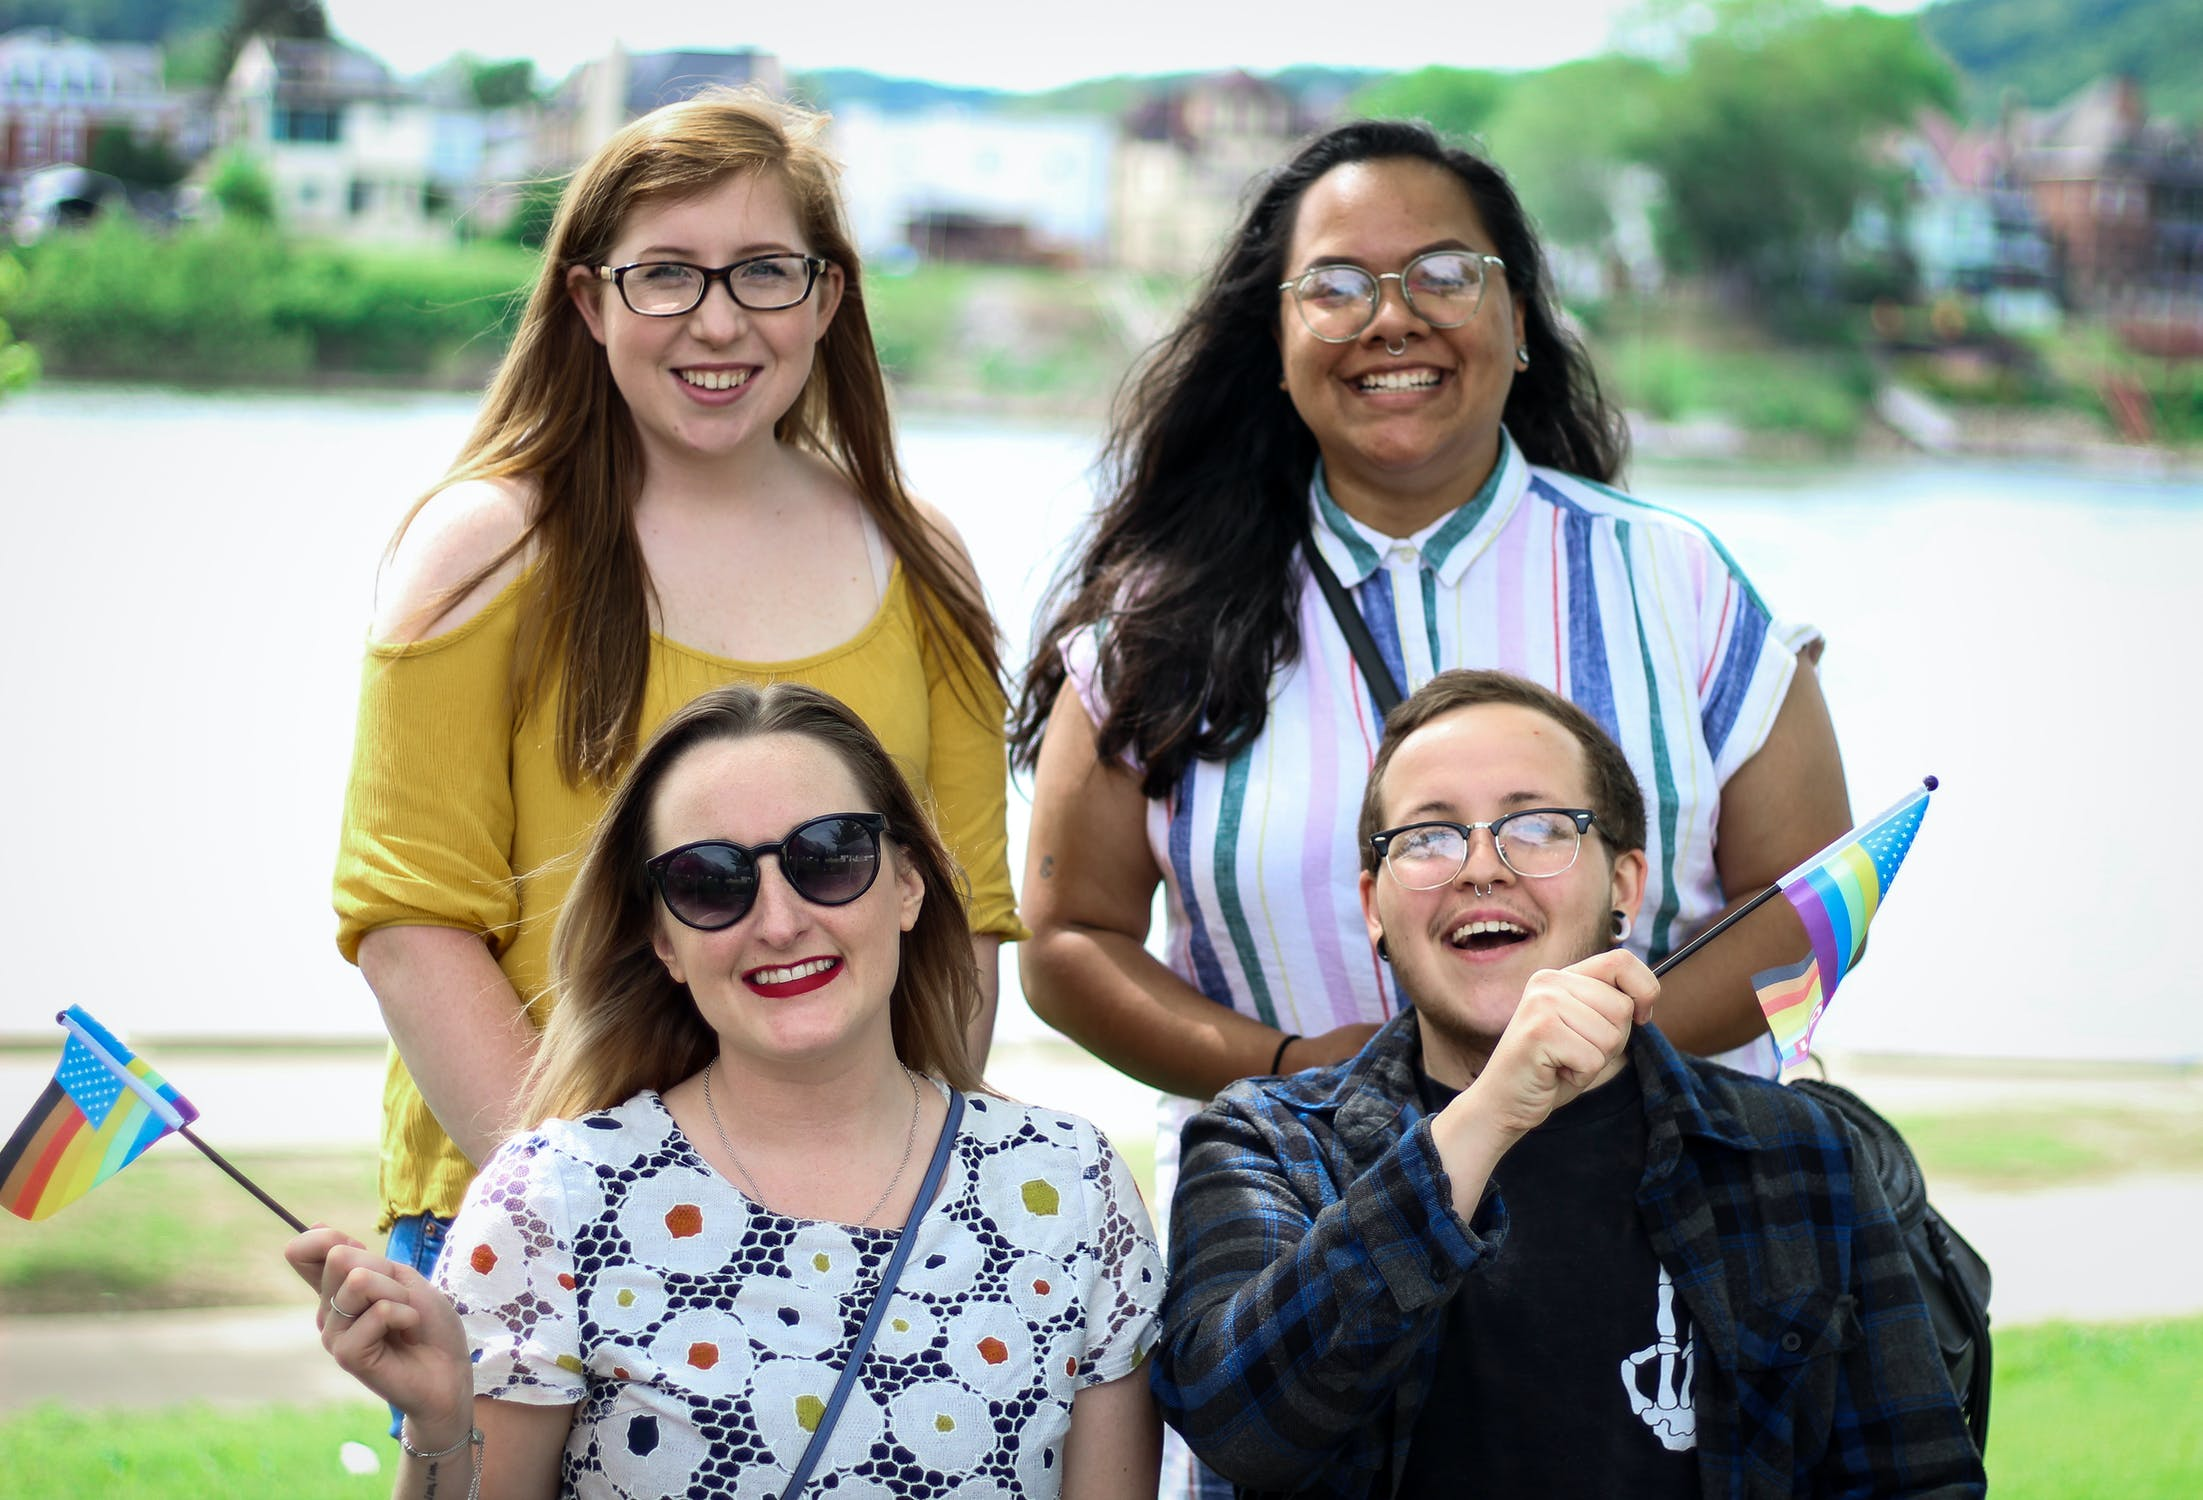 Four friends posing in two levels for a smiling portrait in a park. Two of the friends are holding rainbow pride flags.